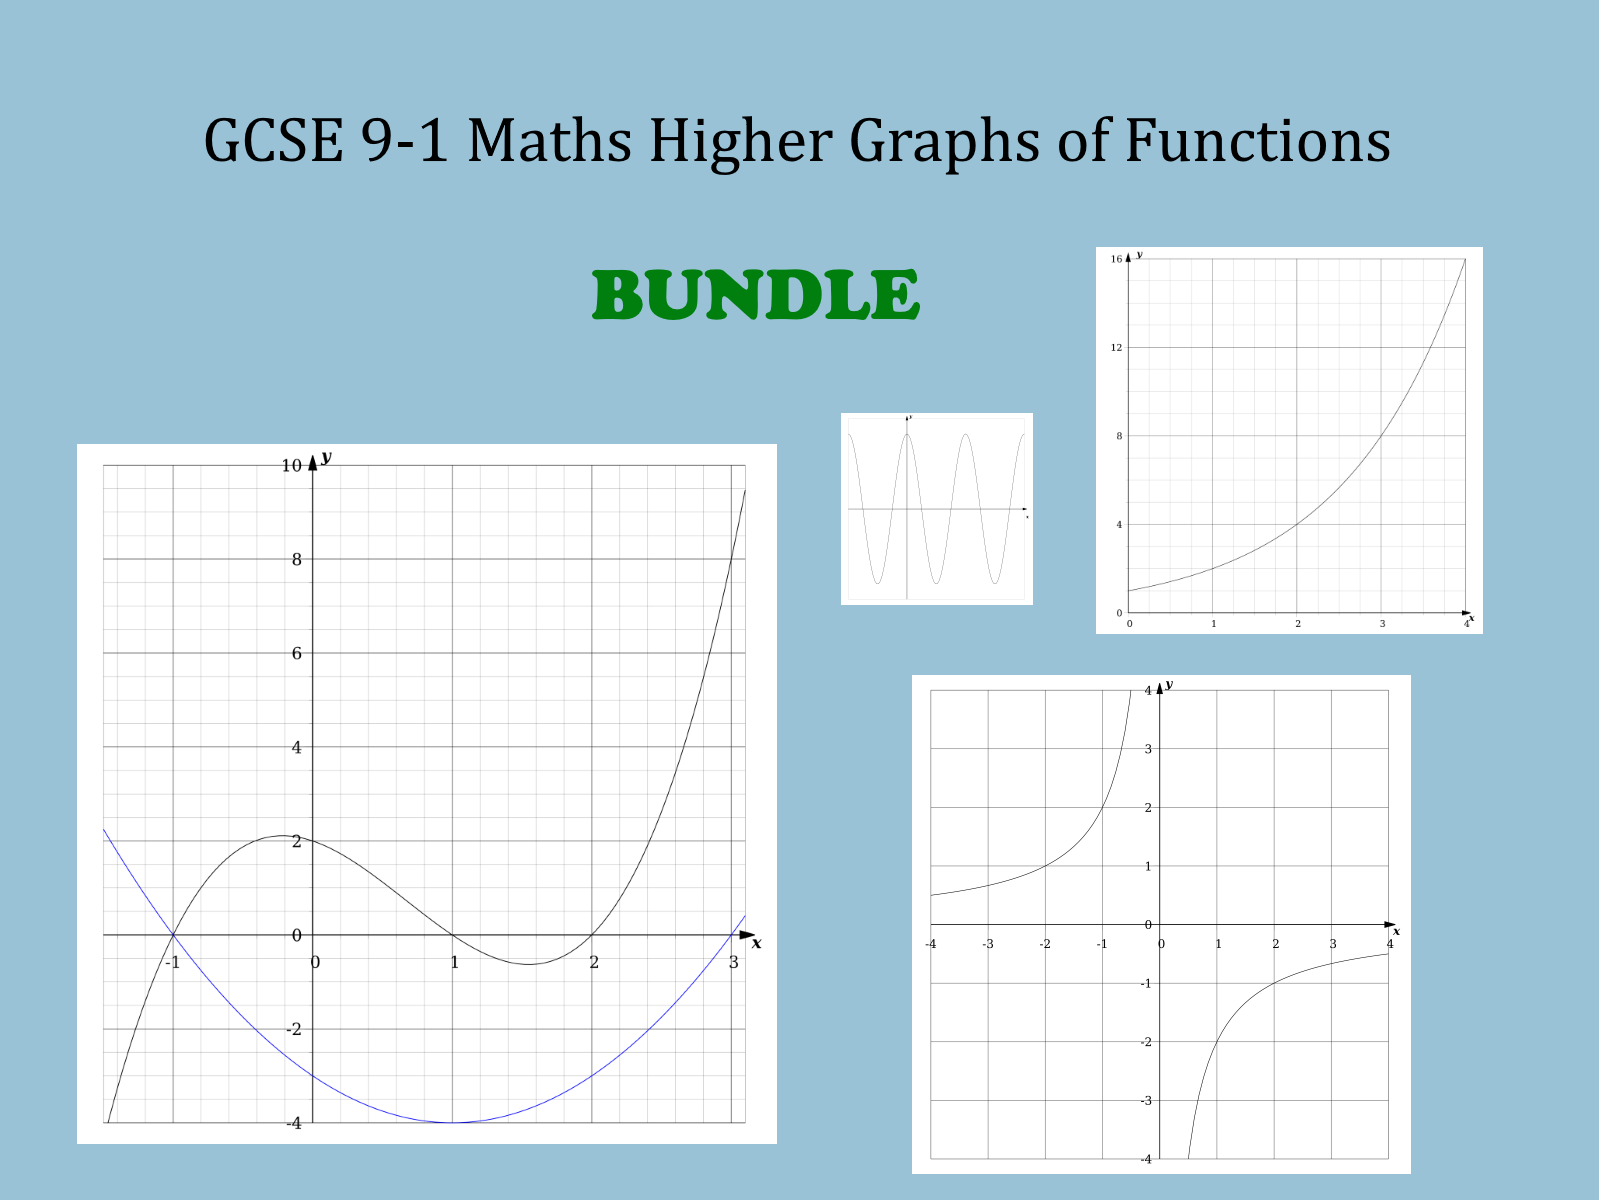 GCSE 9-1 Maths Higher Graphs of Functions